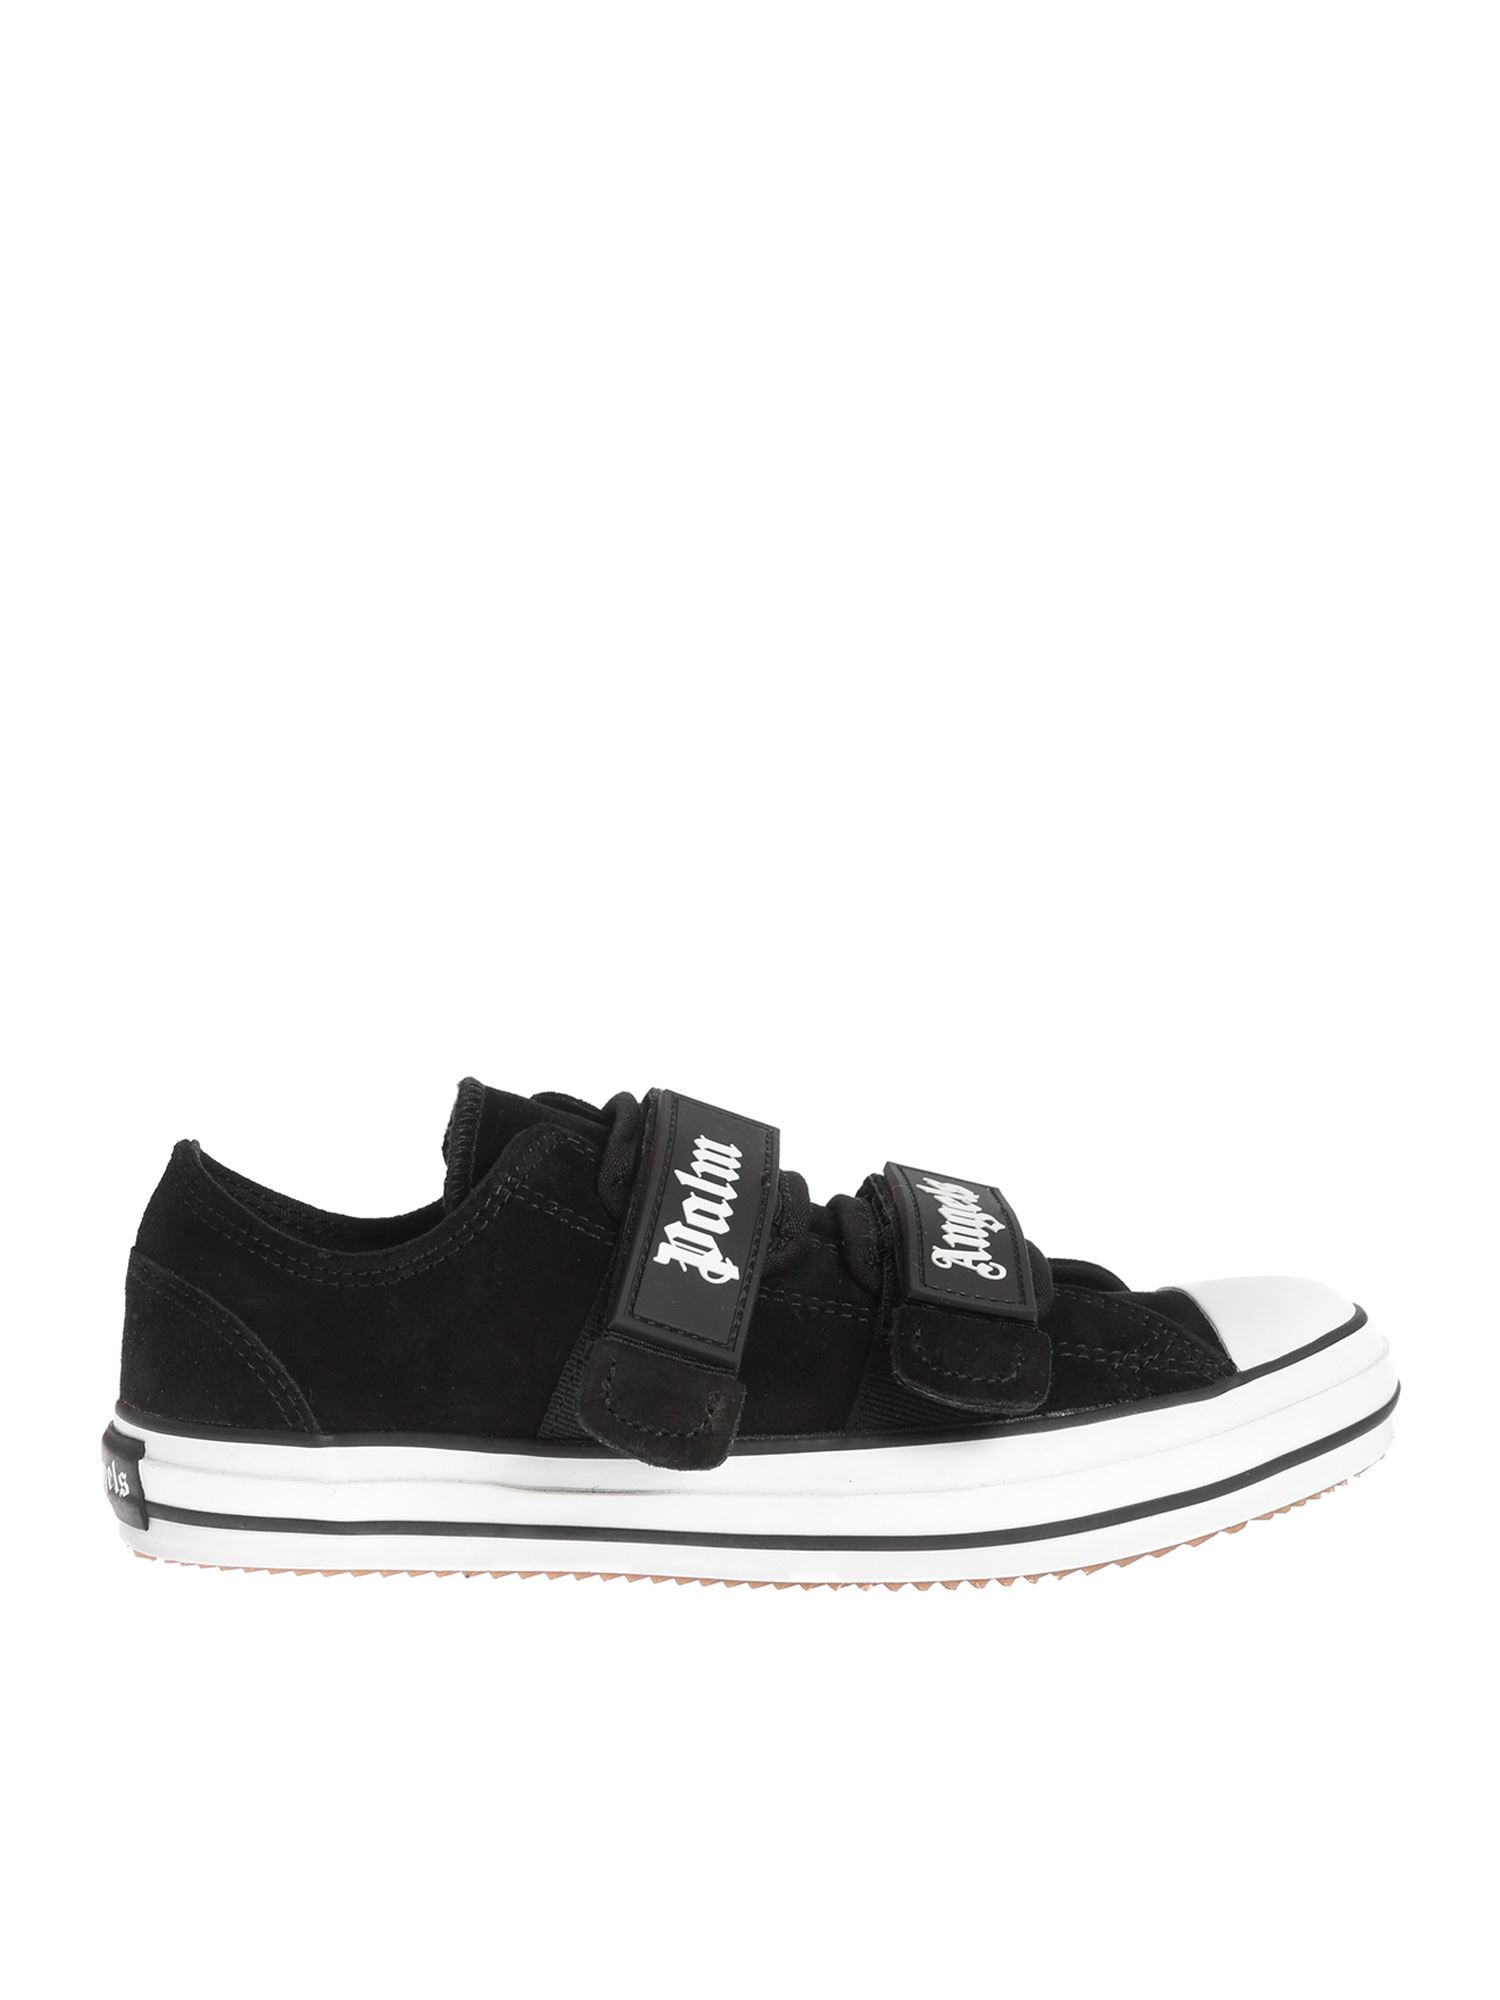 Palm Angels VELCRO VULCANIZED SNEAKERS IN BLACK